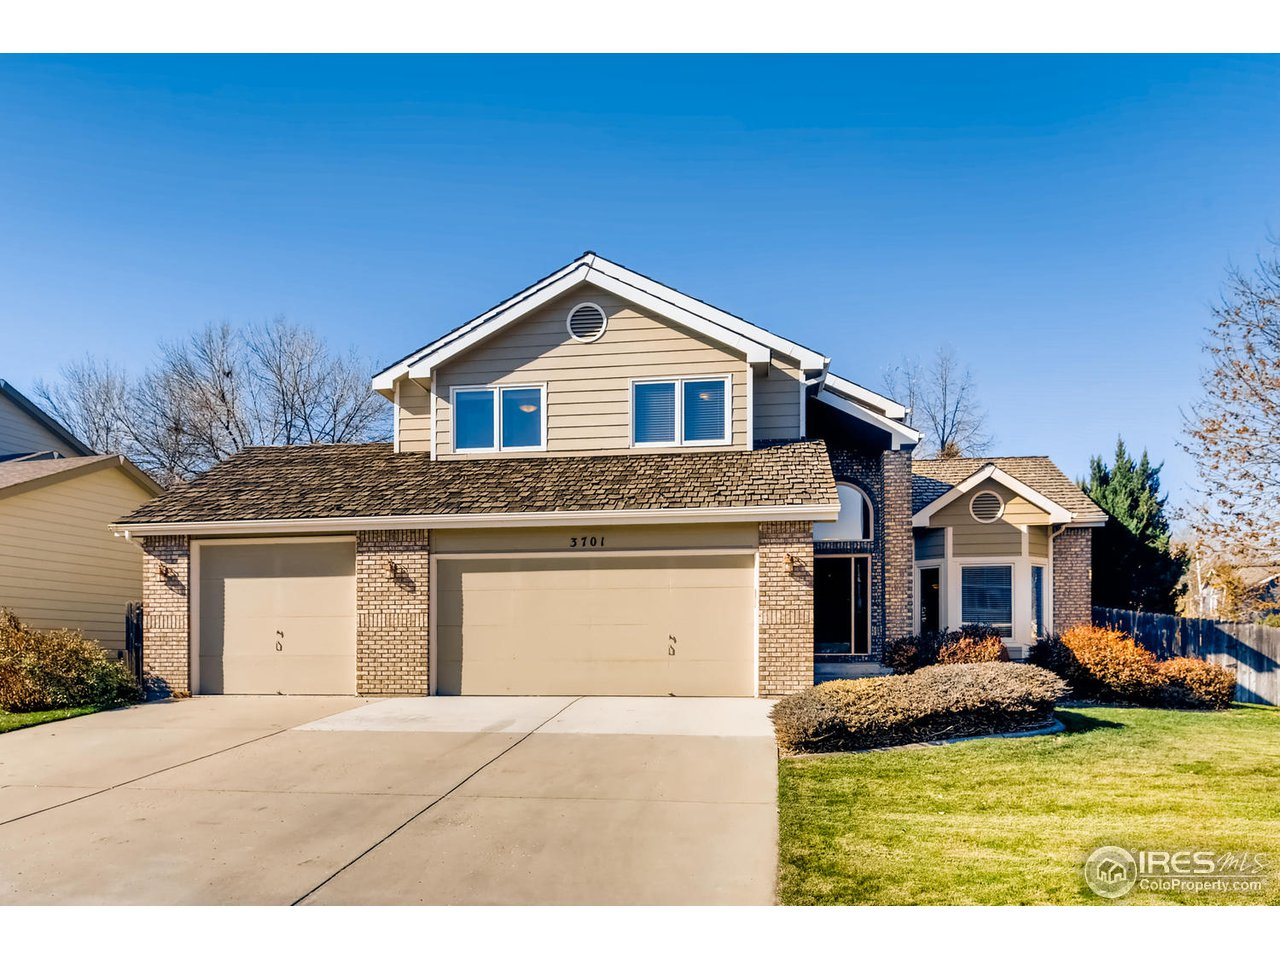 3701 Bromley Dr, Fort Collins CO 80525